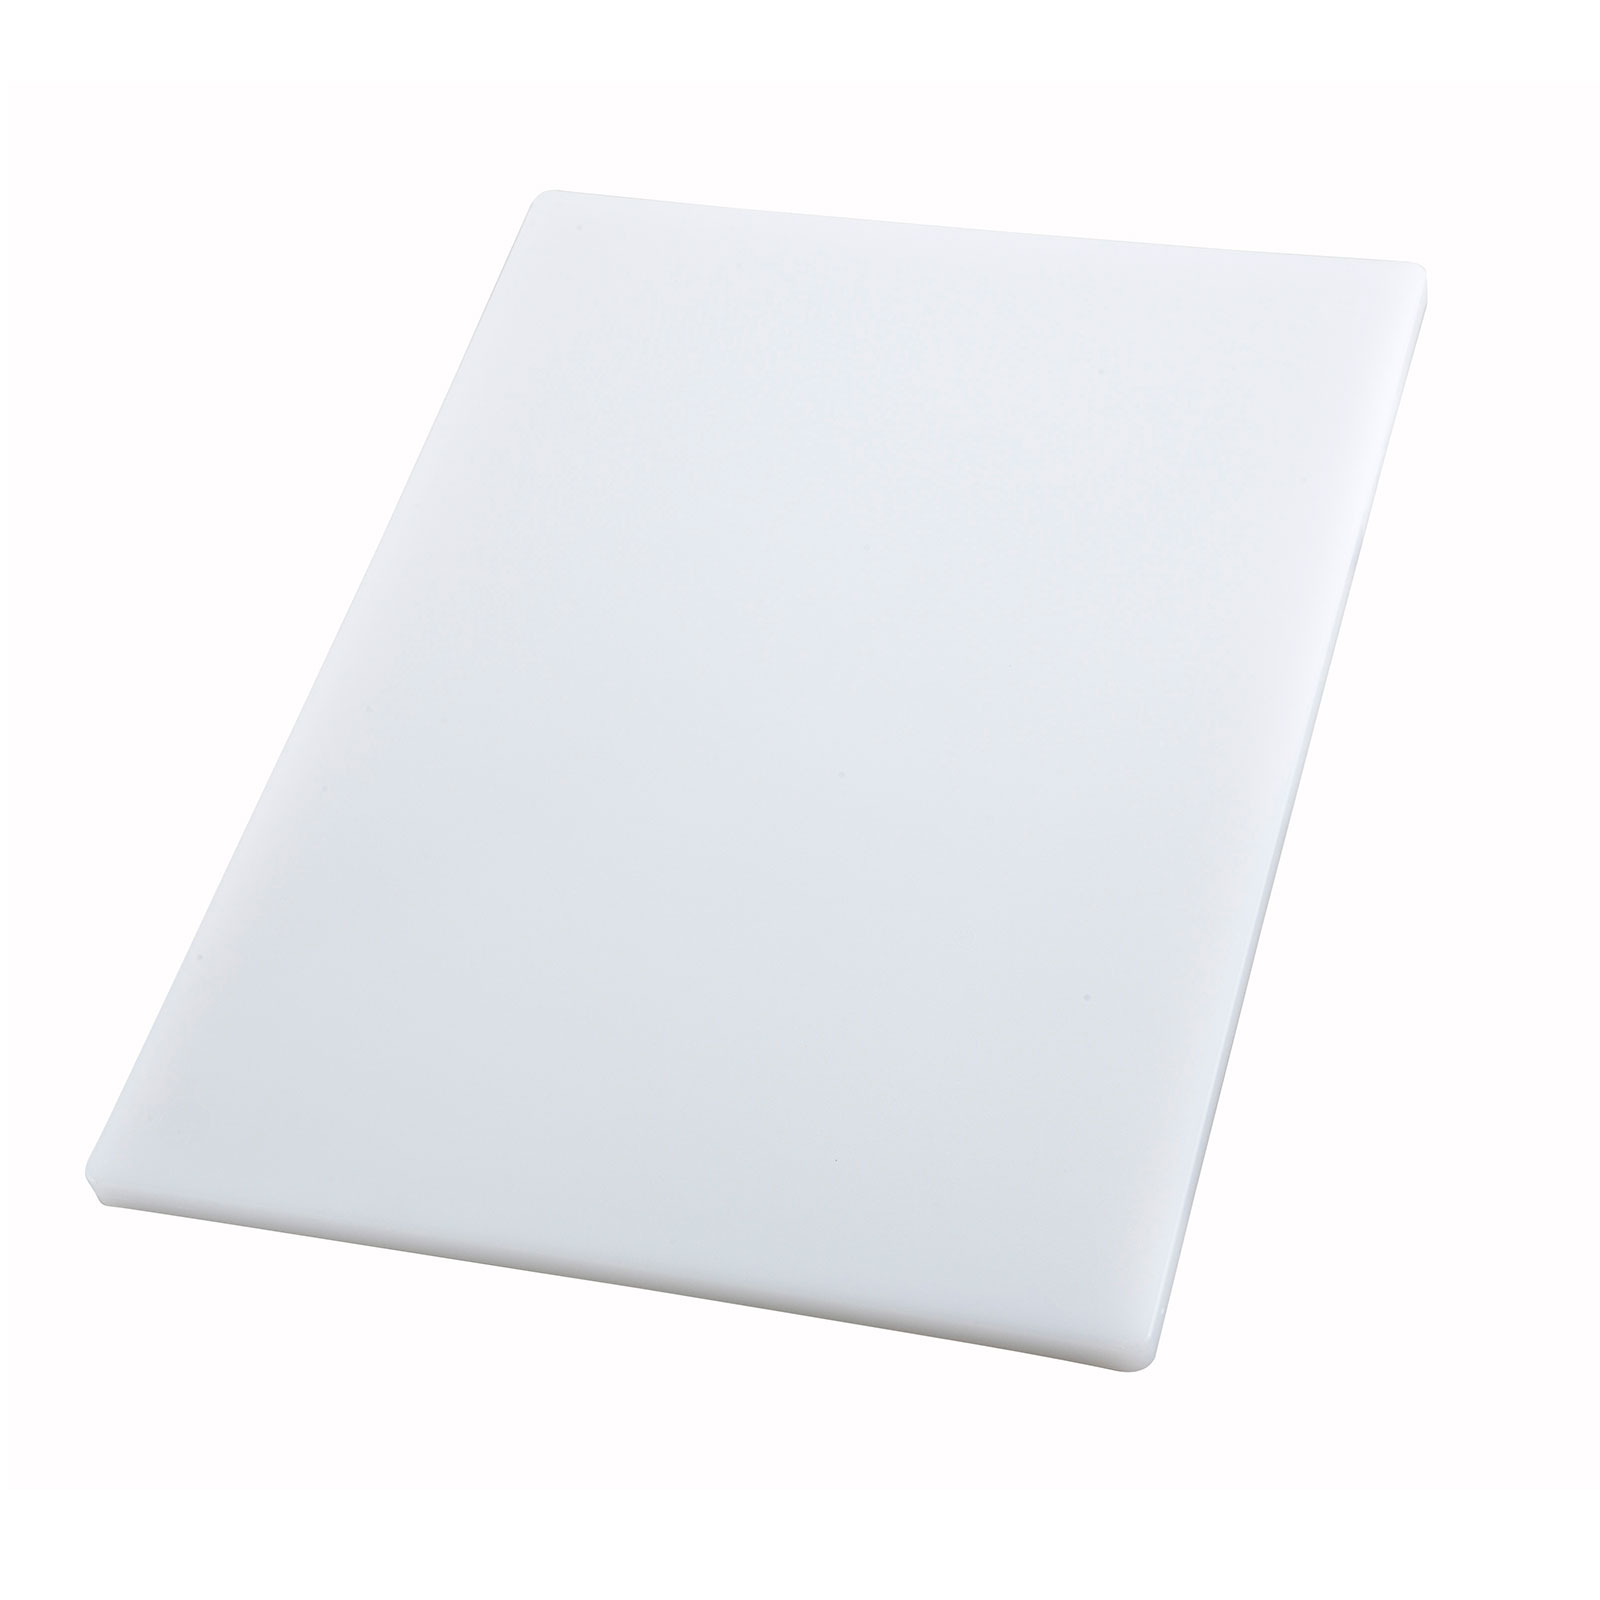 Winco CBH-1824 cutting board, plastic